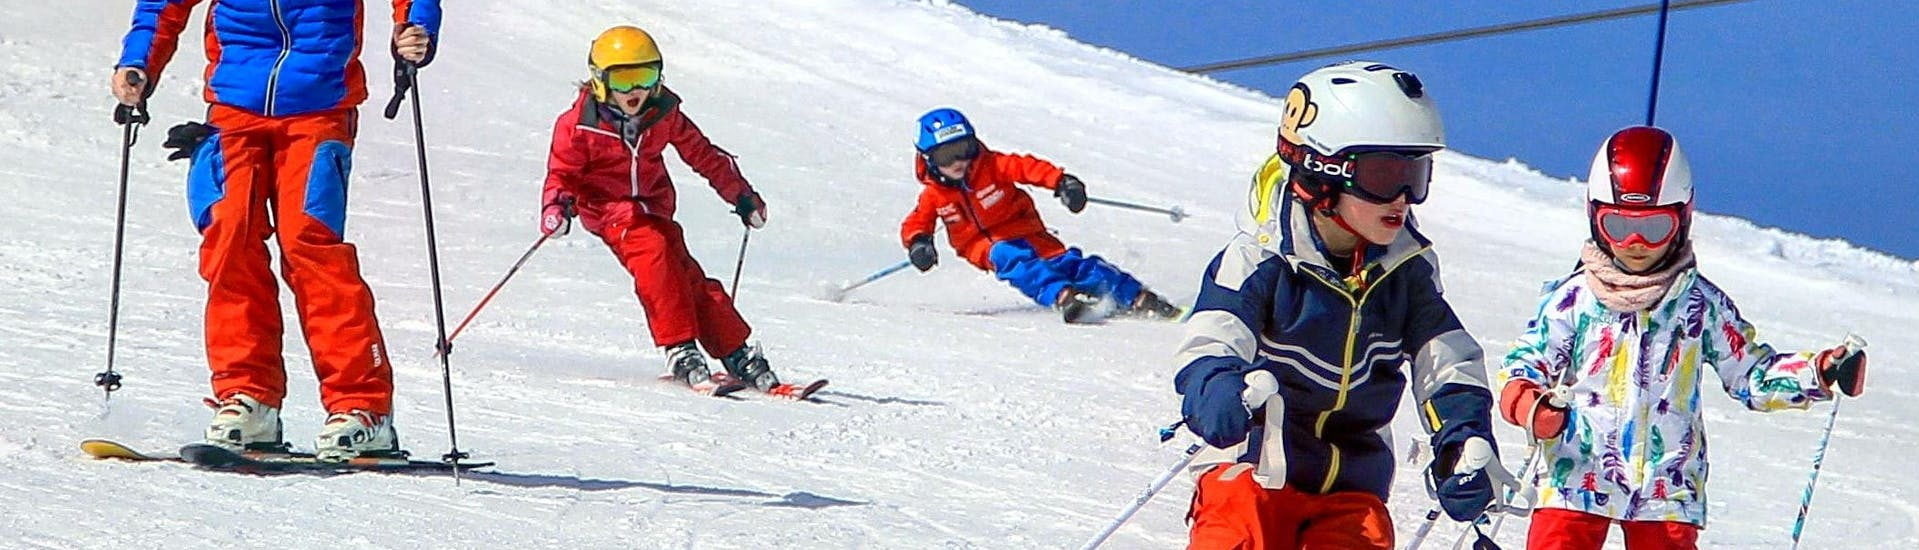 Kids Ski Lessons (4-15 y.) for All Levels